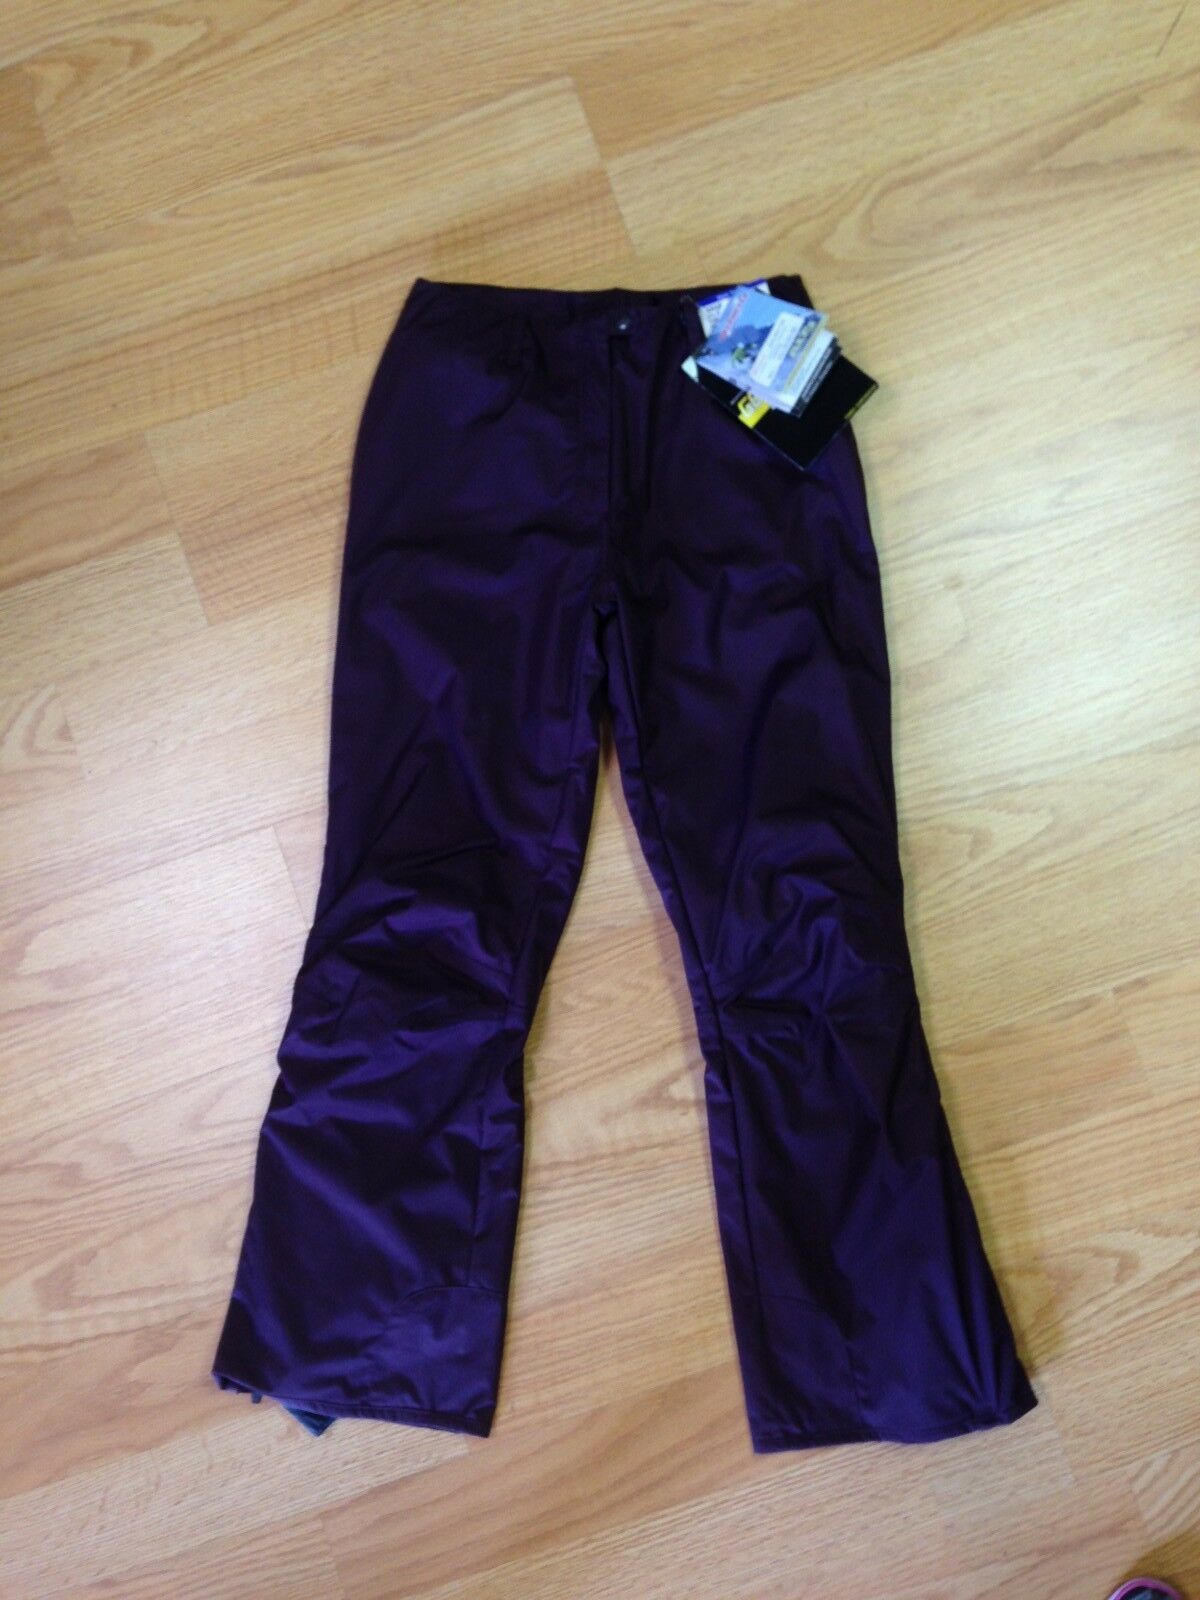 Obermeyer Women's Anarchy  Pant Sz 6,Skiing,Snowboarding,Winter Apparel  professional integrated online shopping mall